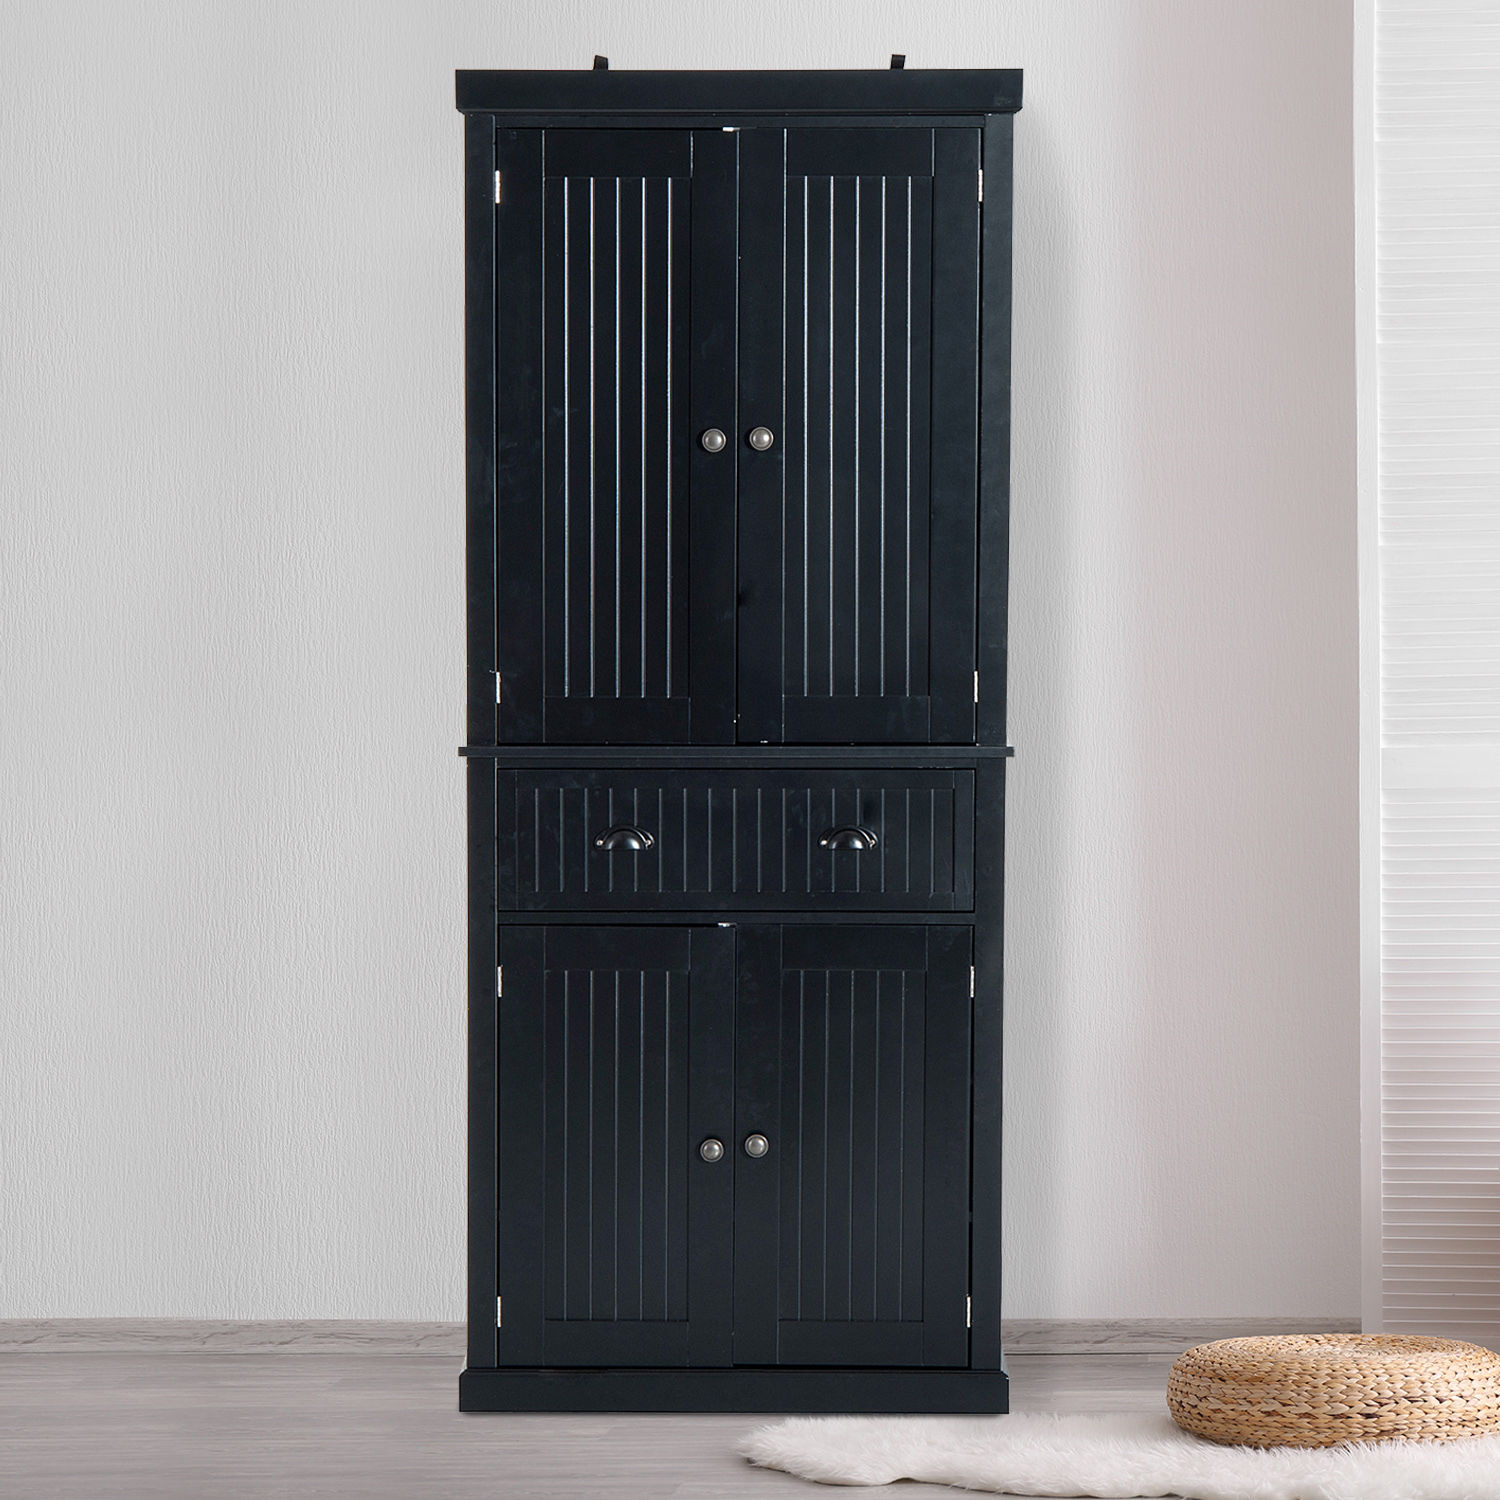 HOMCOM Tall Colonial Storage Cabinet Kitchen Pantry Cupboard Home  Organizer; Picture 2 Of 8 ...